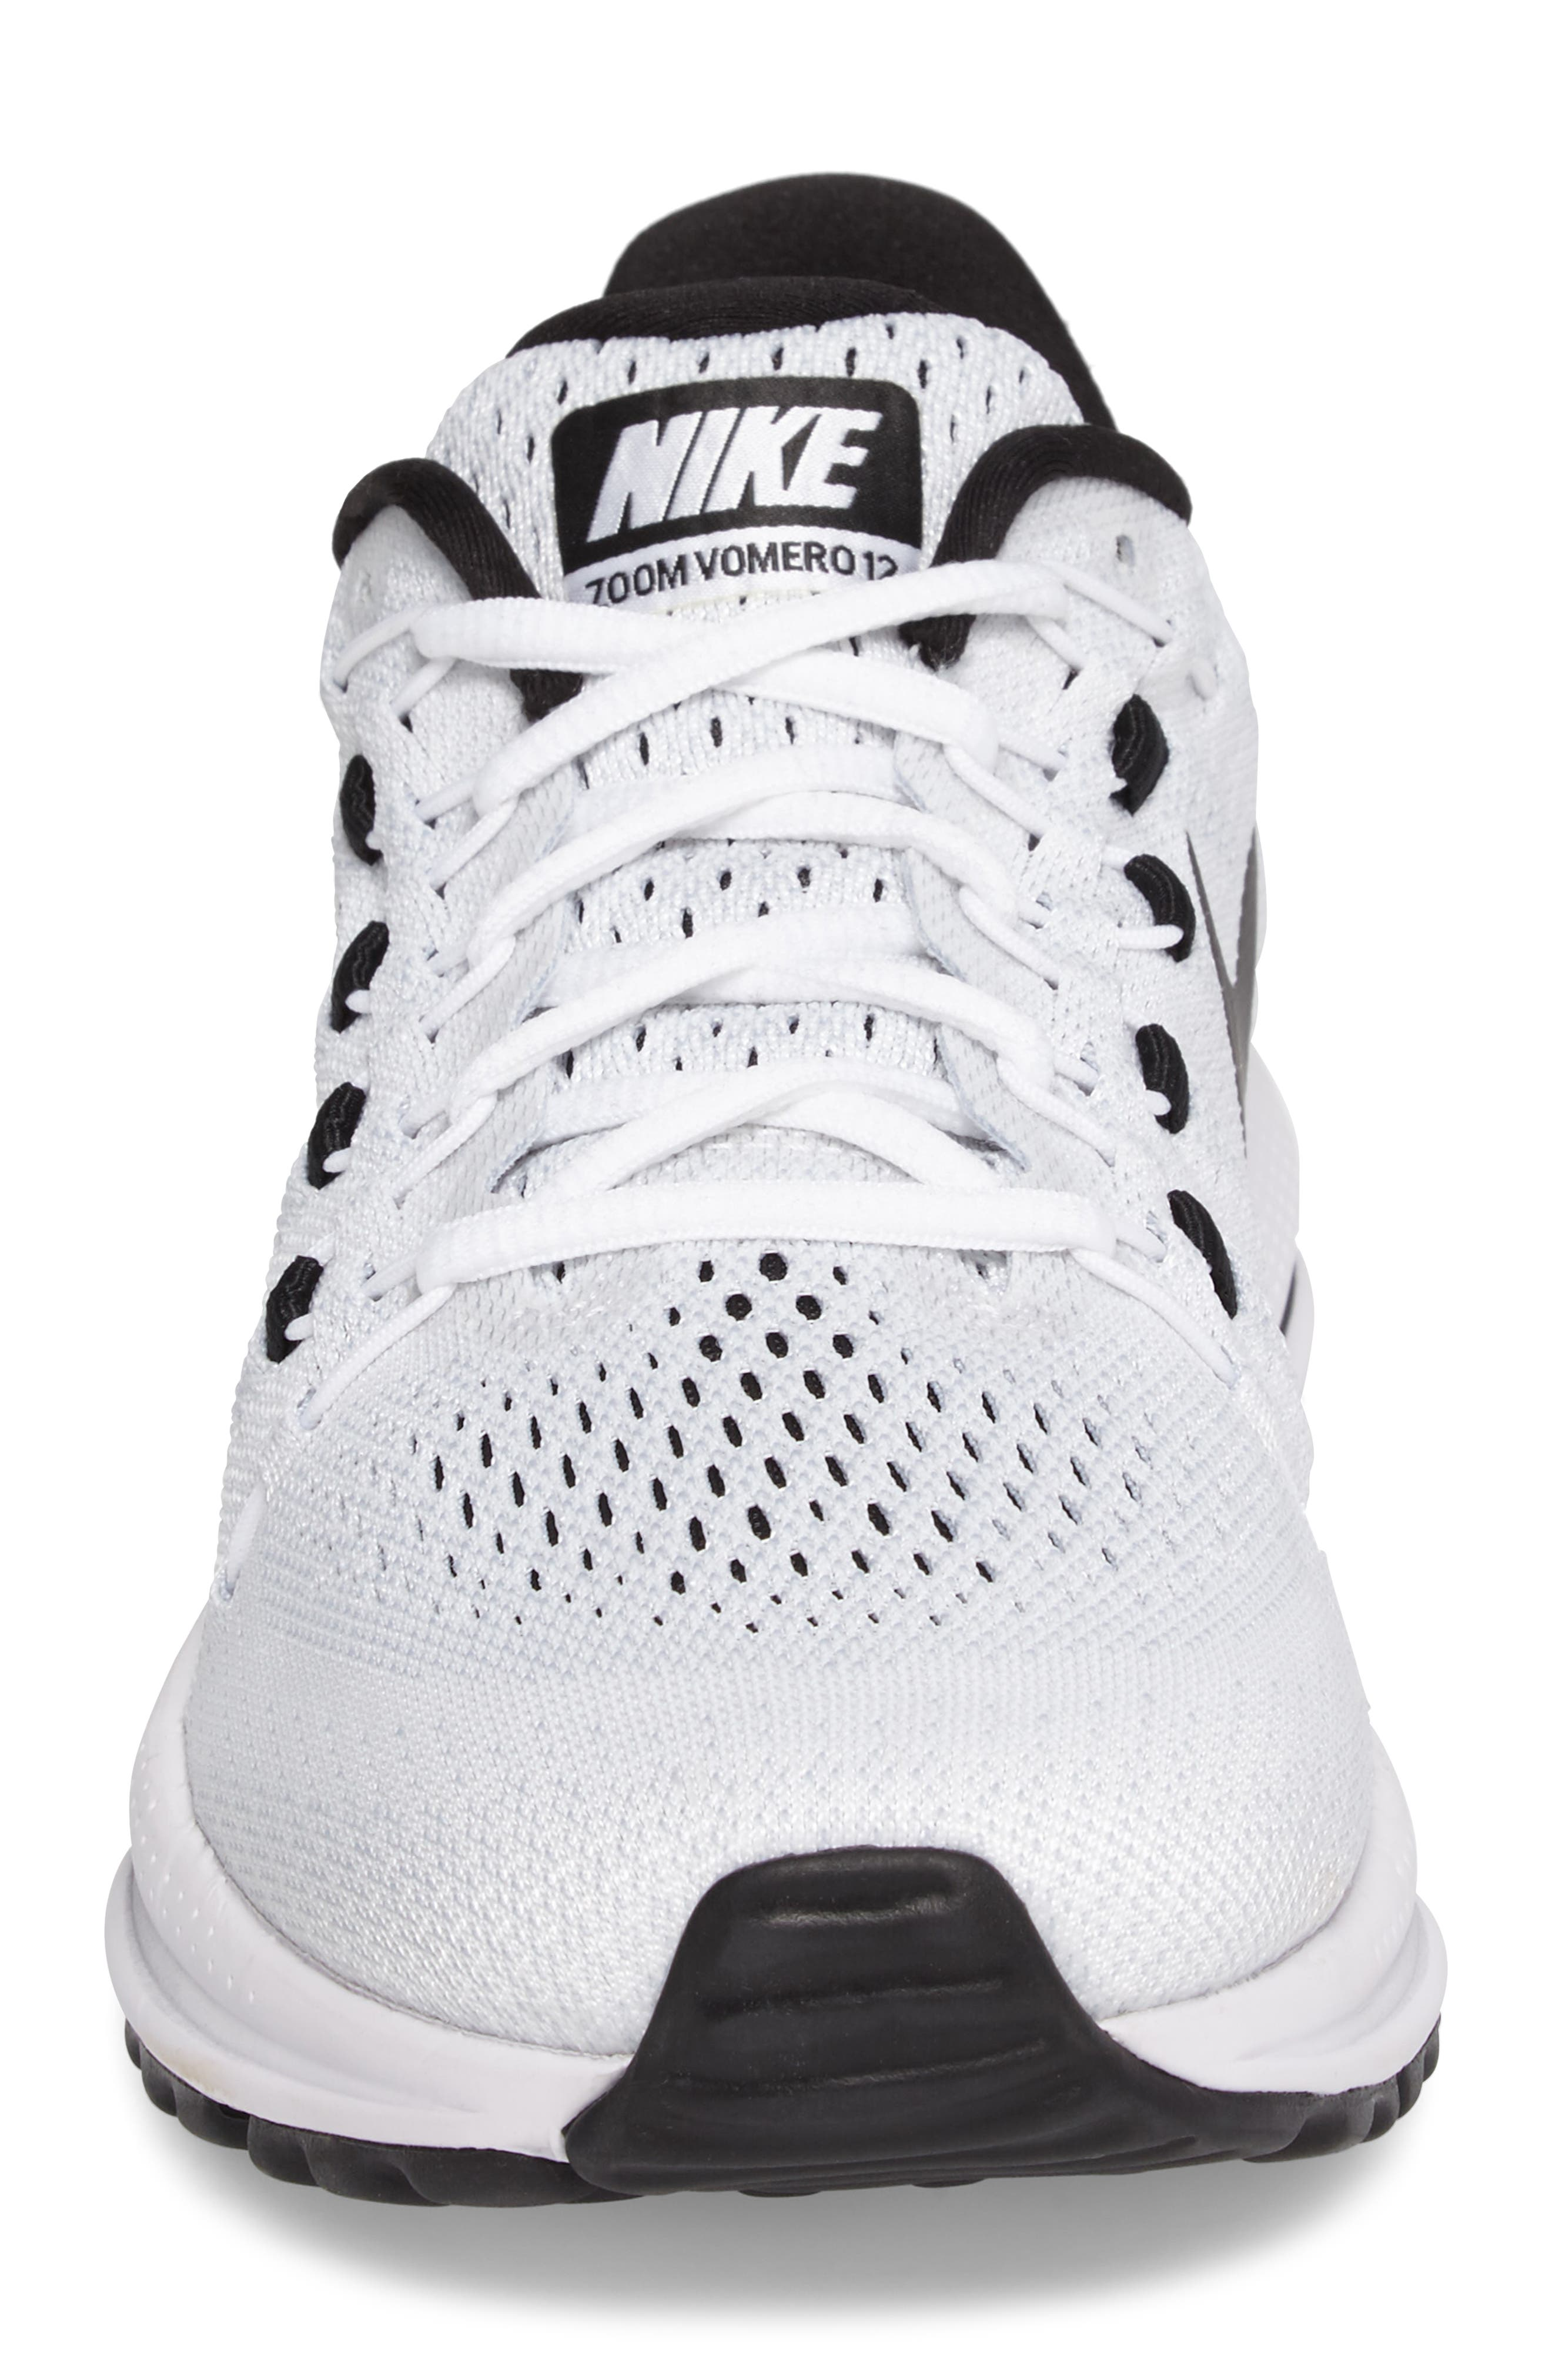 NIKE,                             Air Zoom Vomero 12 Running Shoe,                             Alternate thumbnail 4, color,                             100